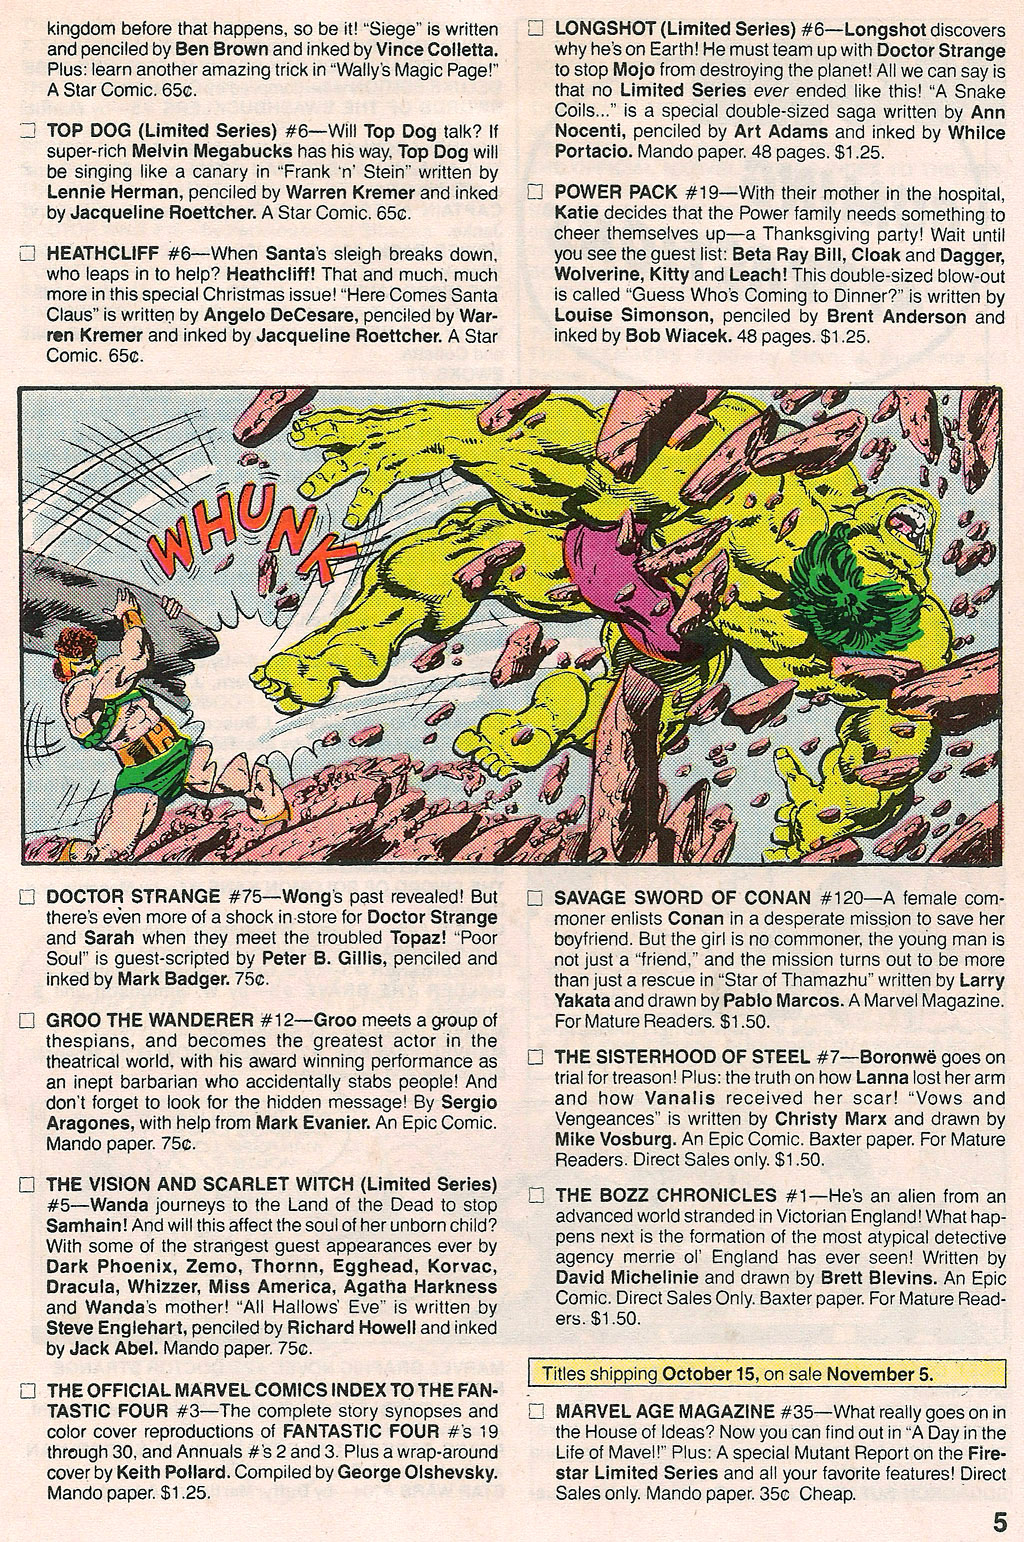 Comic Marvel Age issue 38